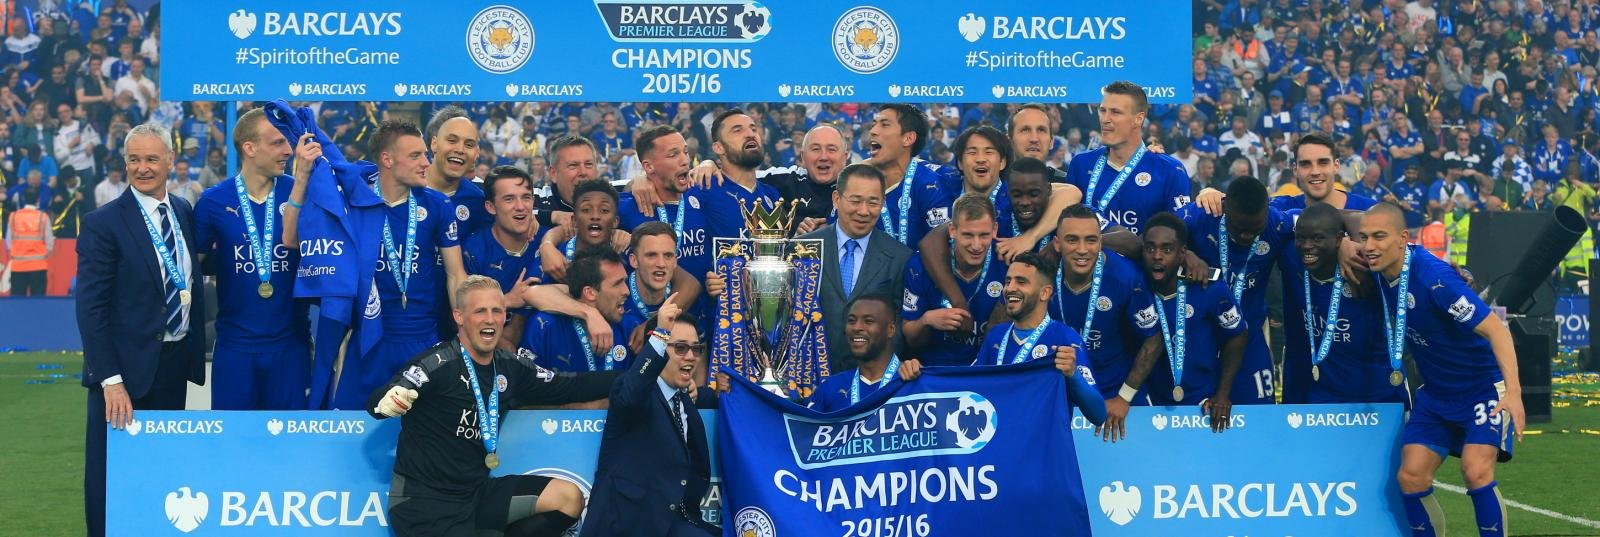 A week of joy, pride and tears in the city of Leicester after momentous title win